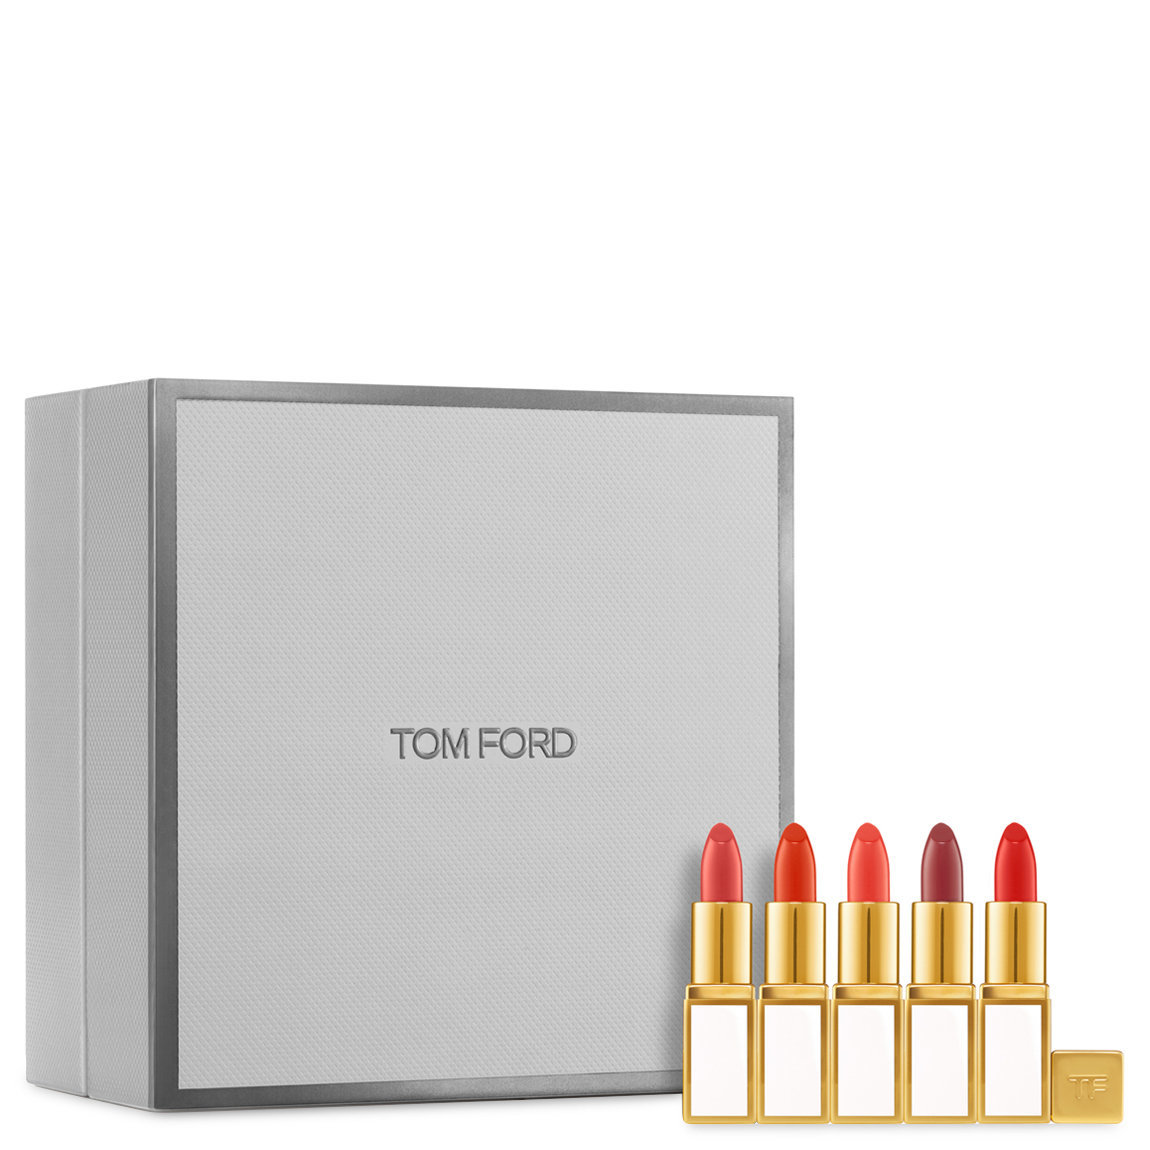 TOM FORD Lip Color Sheer Mini Set product swatch.